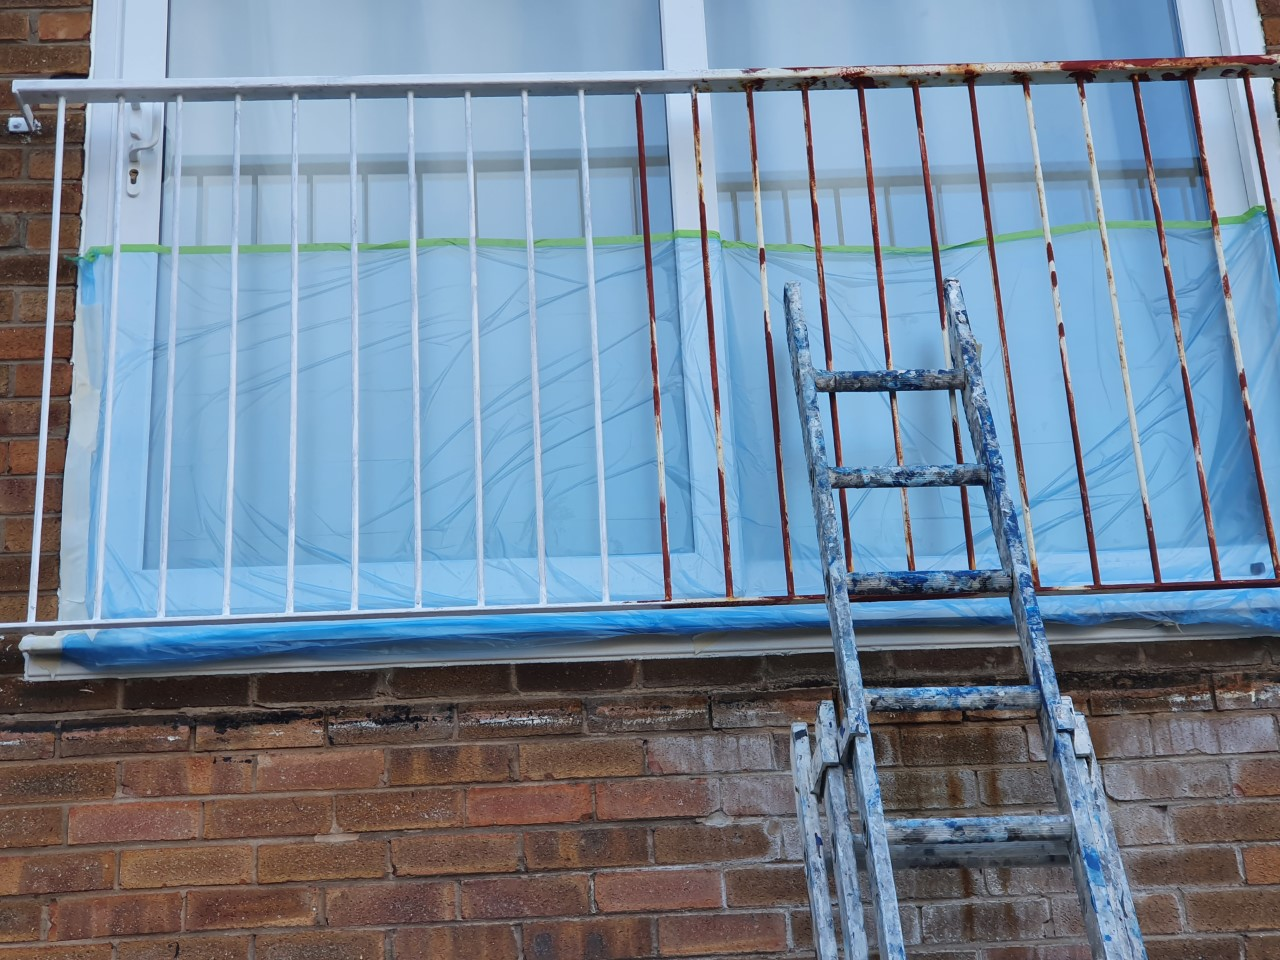 The best way to paint metal railings. Full preperation, including oxide primer